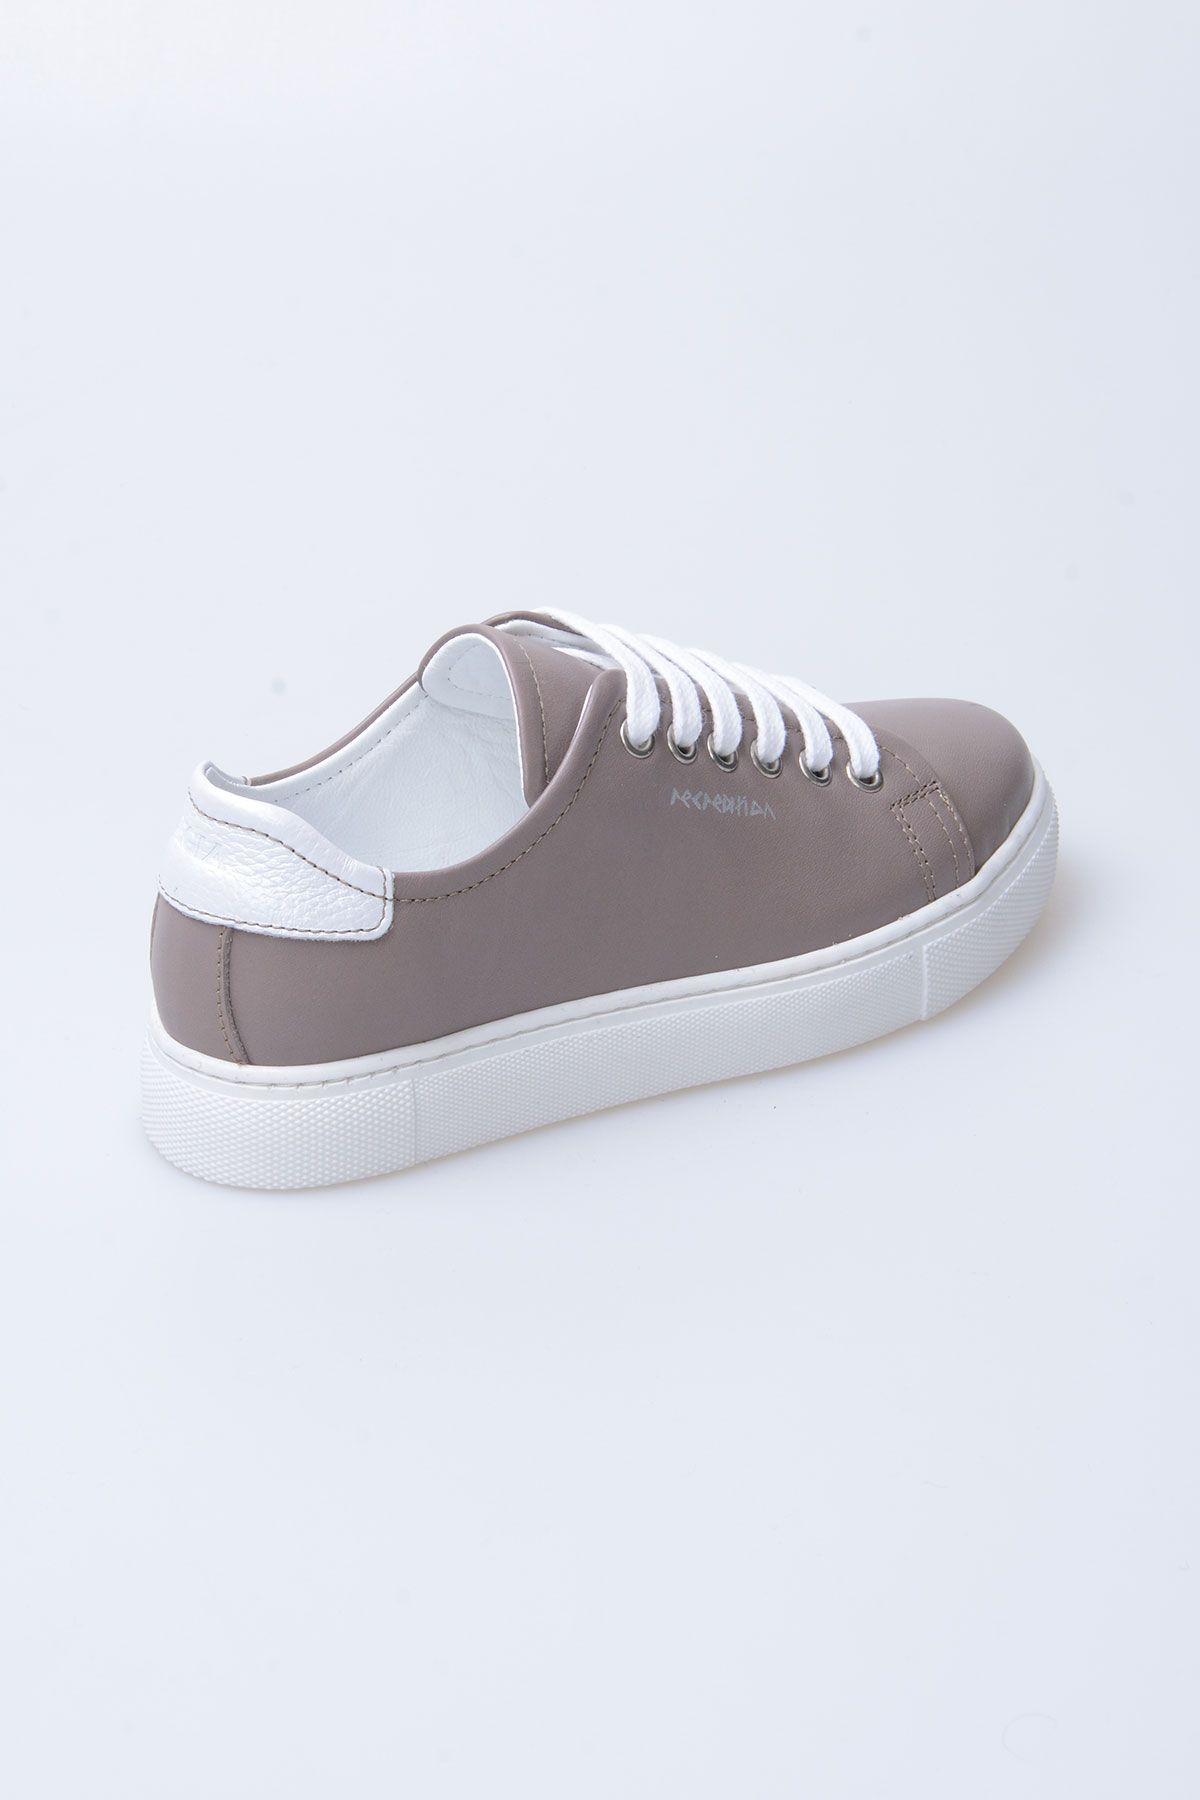 Pegia Recreation Hakiki Deri Bayan Sneaker 19REC201 Vizon